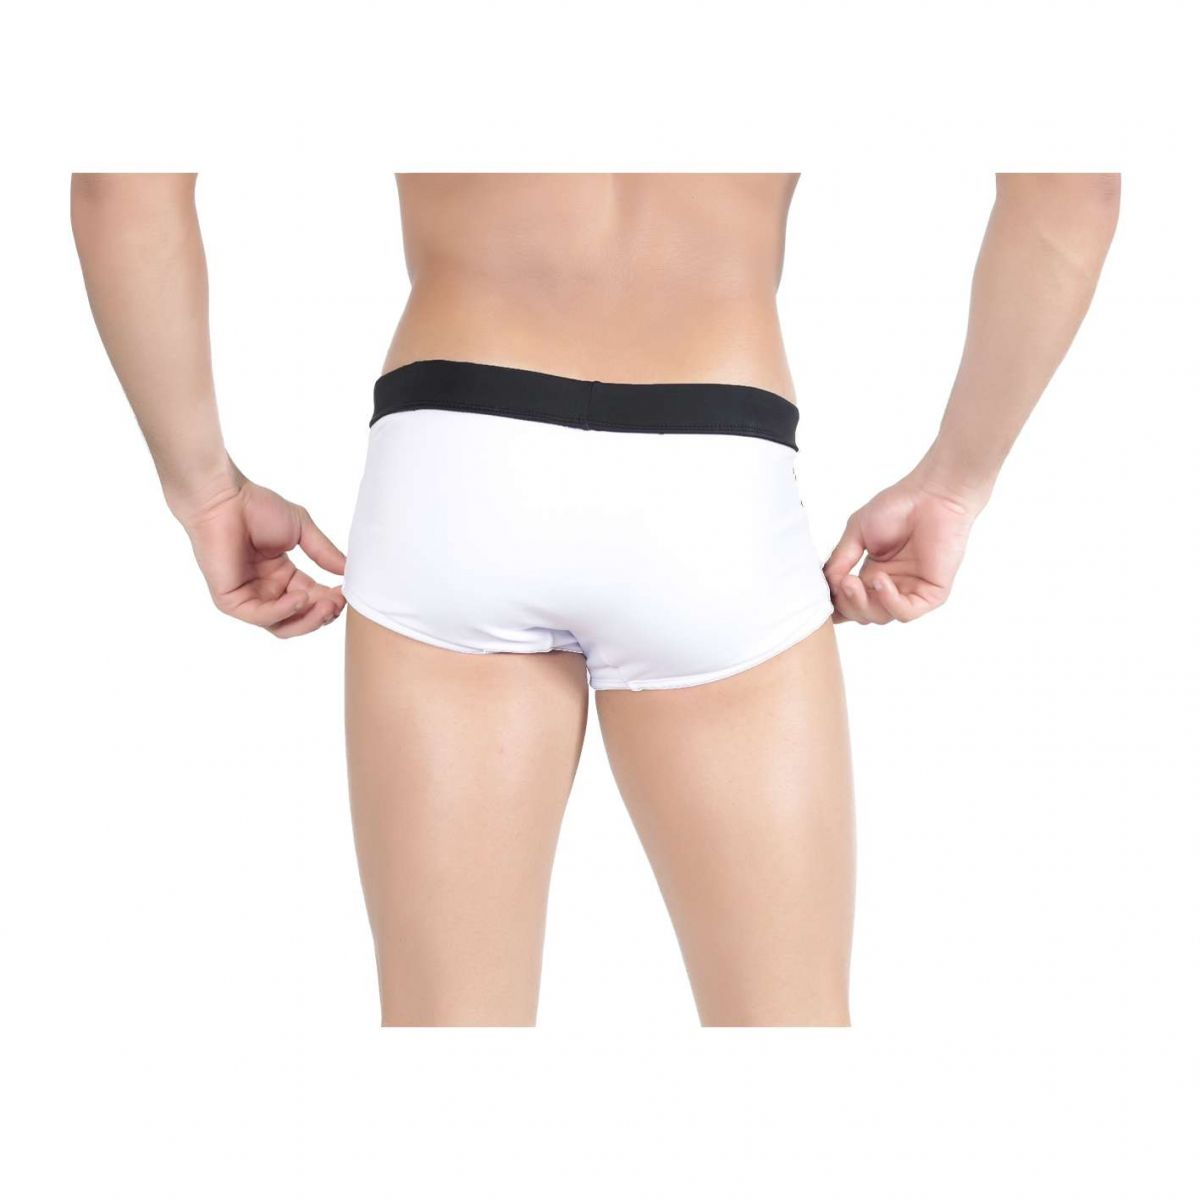 Sunga Brief Grigo Collection Confort